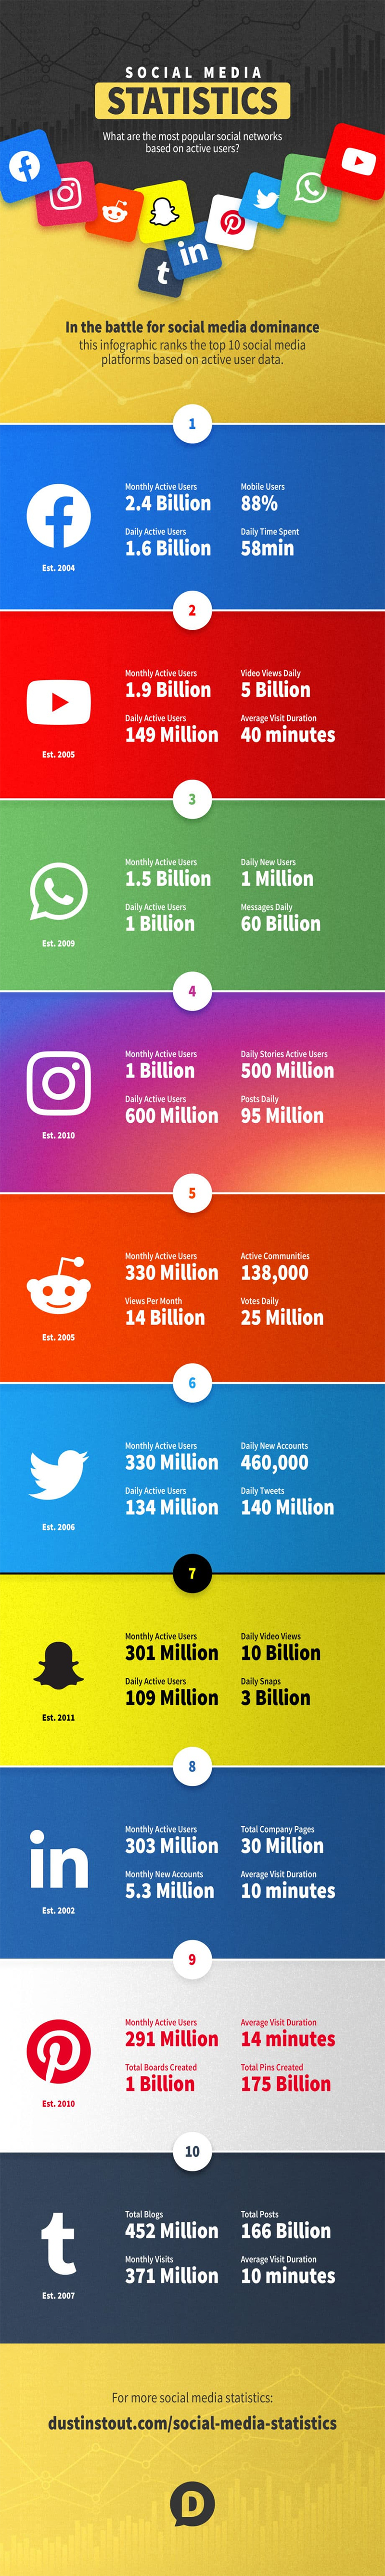 50-Social-Media-Stats-to-Help-You-Choose-the-Right-Platform-for-Your-Business.jpg